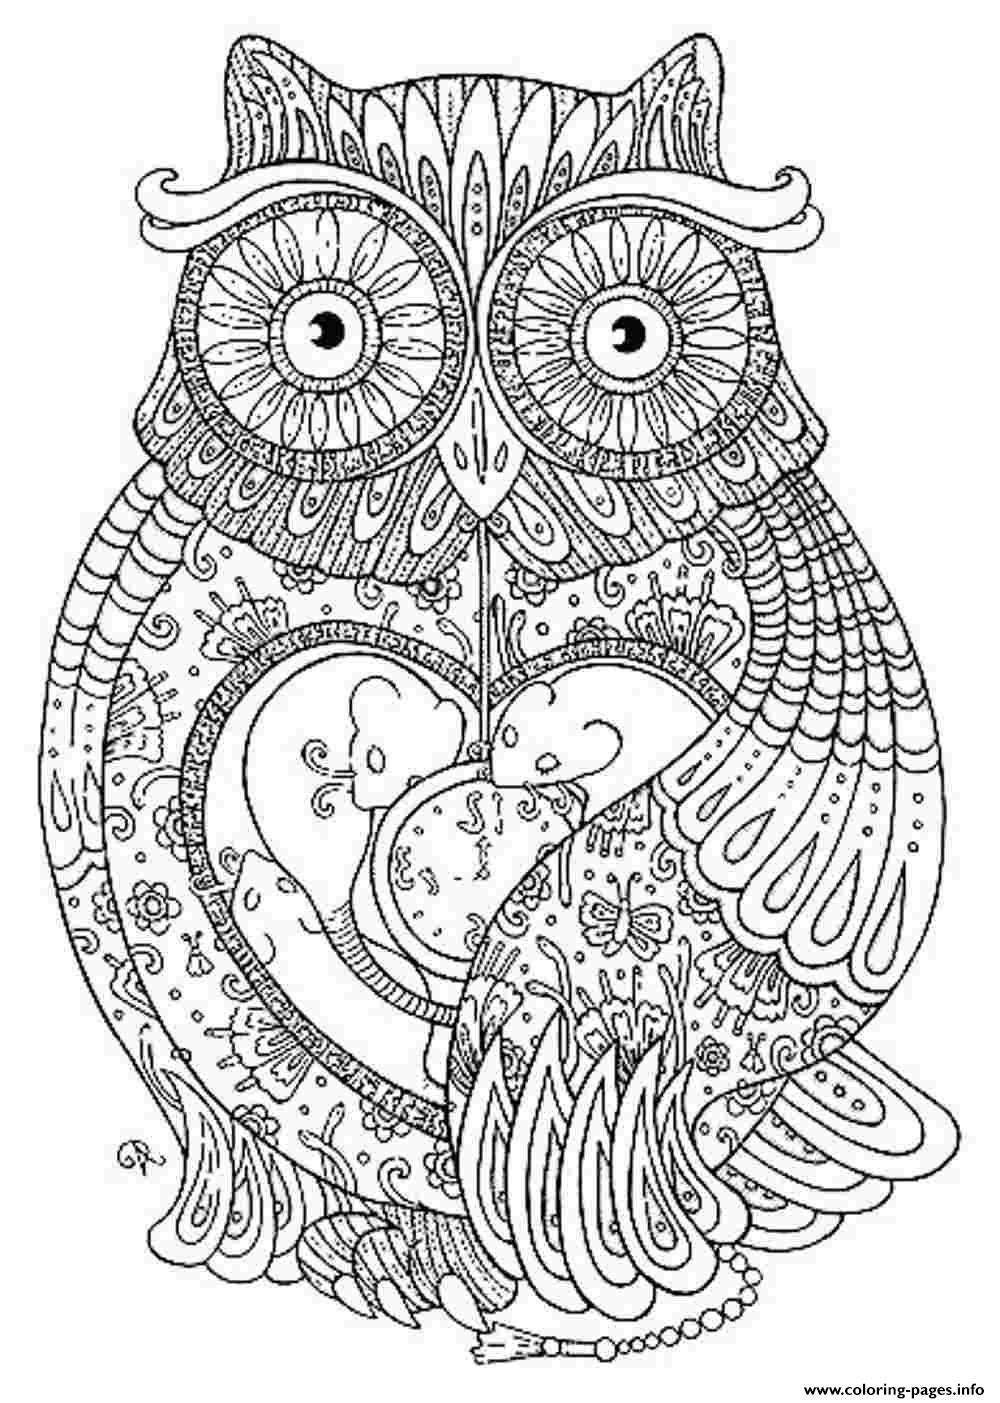 Animal For Adults Coloring Pages for Kids and for Adults